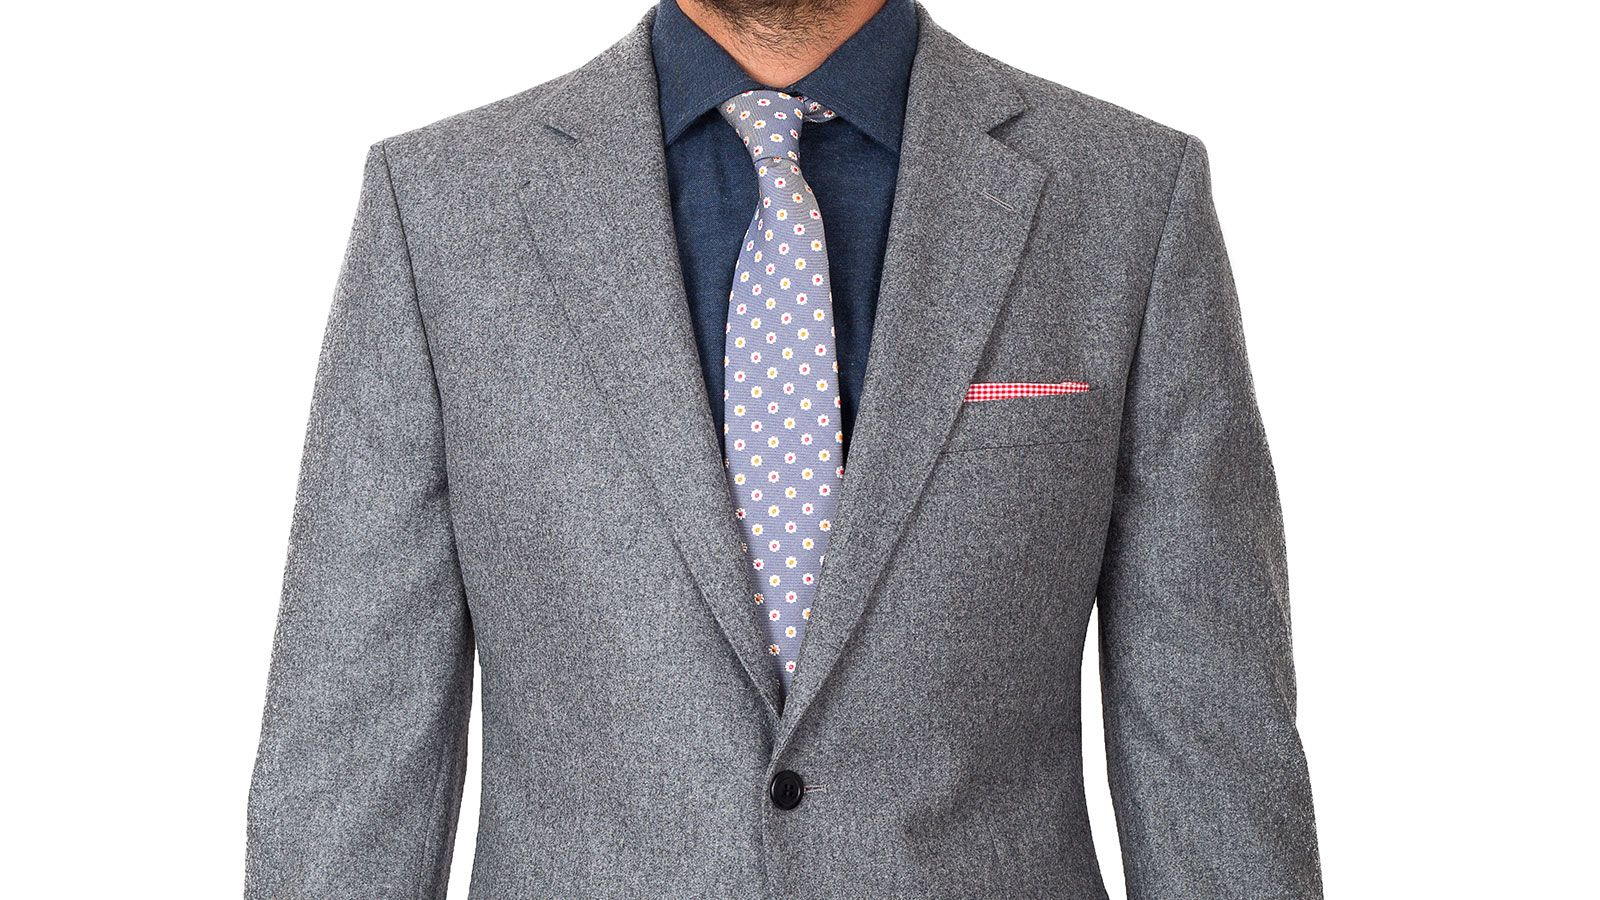 Grey flannel jacket  Grey Flannel Suit greyflannel flannelsuit  Menus Suit Styles